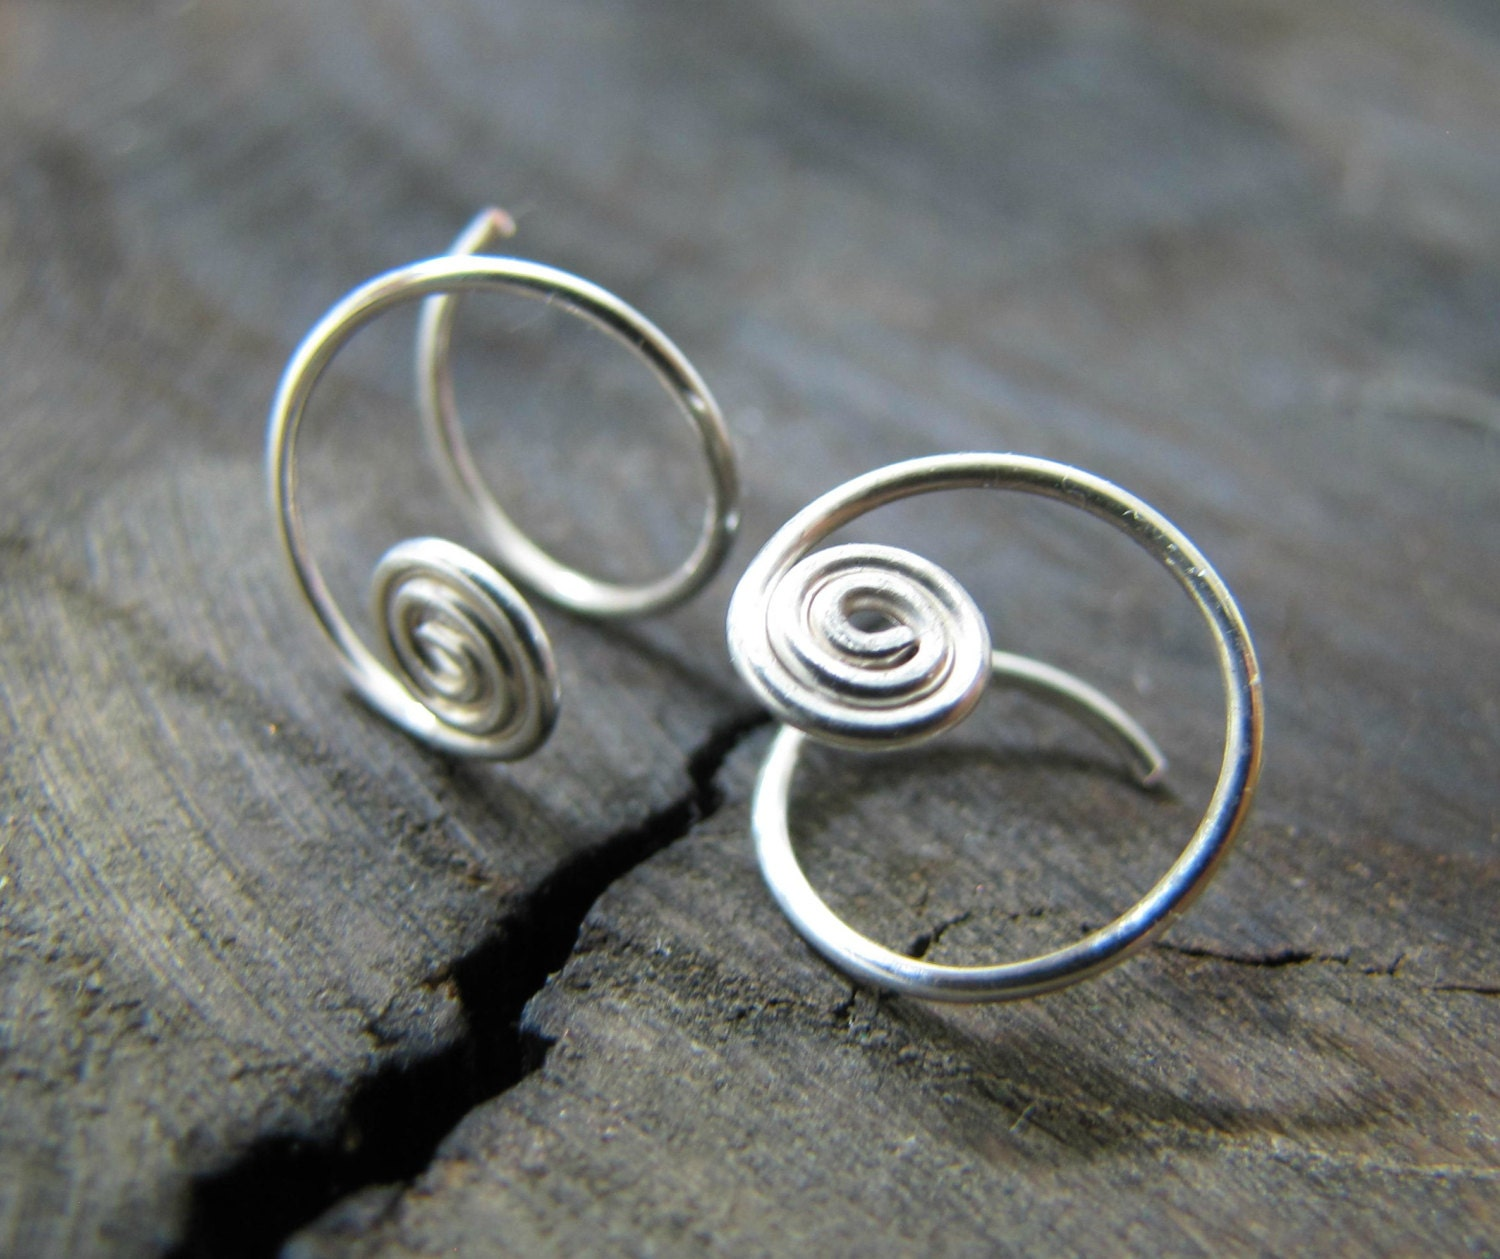 tiny spiral hoop earrings small silver hoops sterling silver. Black Bedroom Furniture Sets. Home Design Ideas